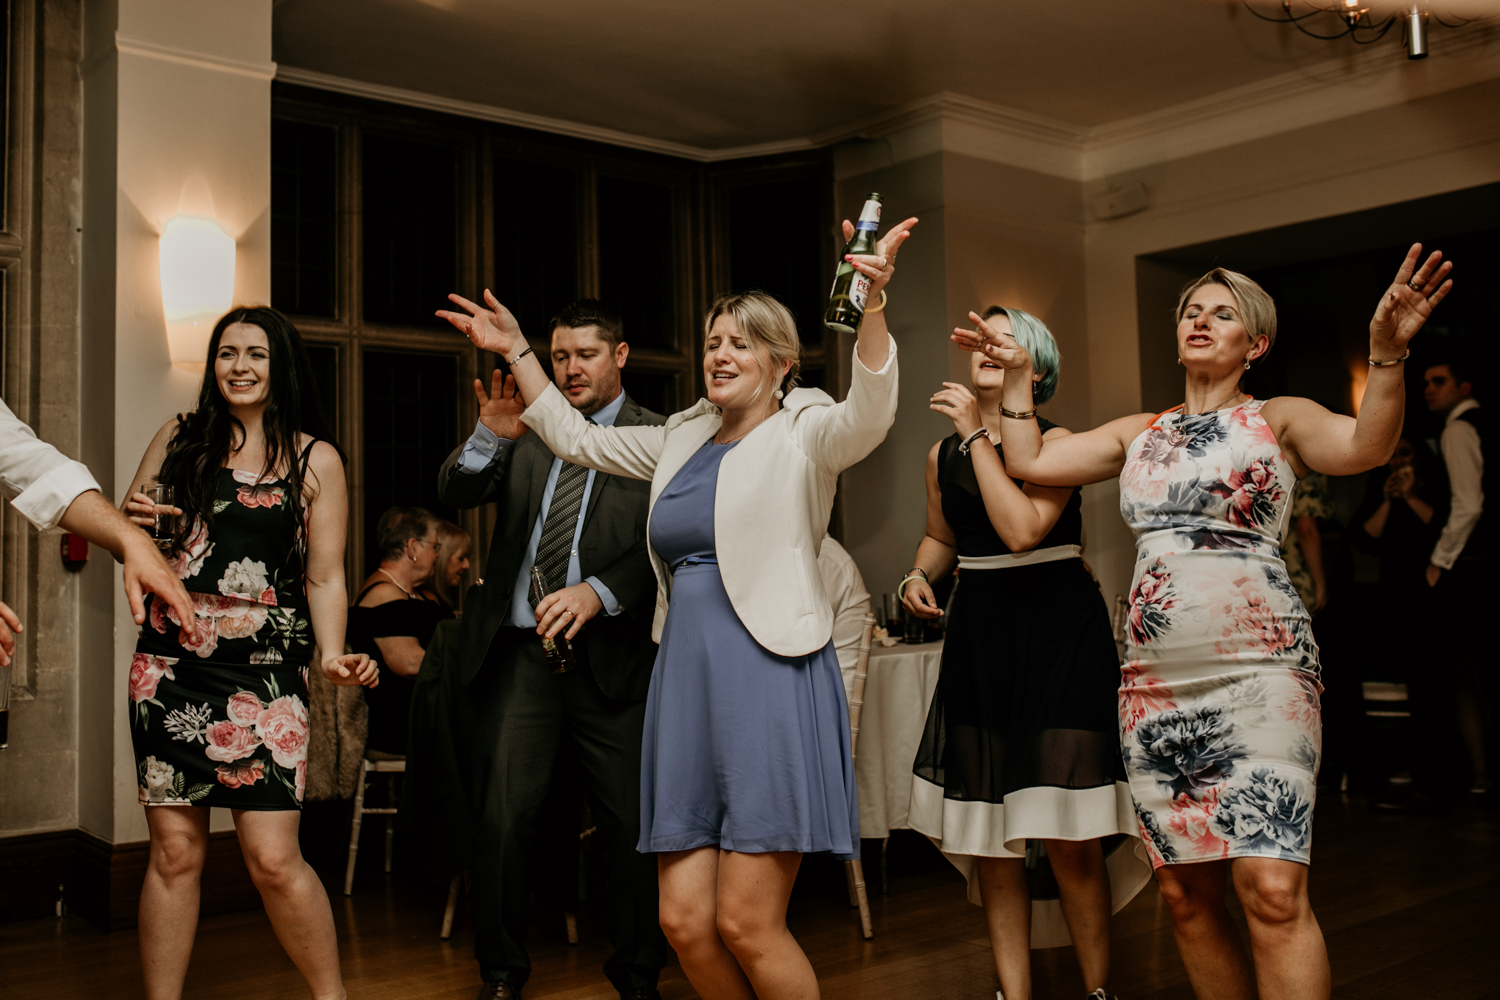 guests dancing during wedding reception in somerset